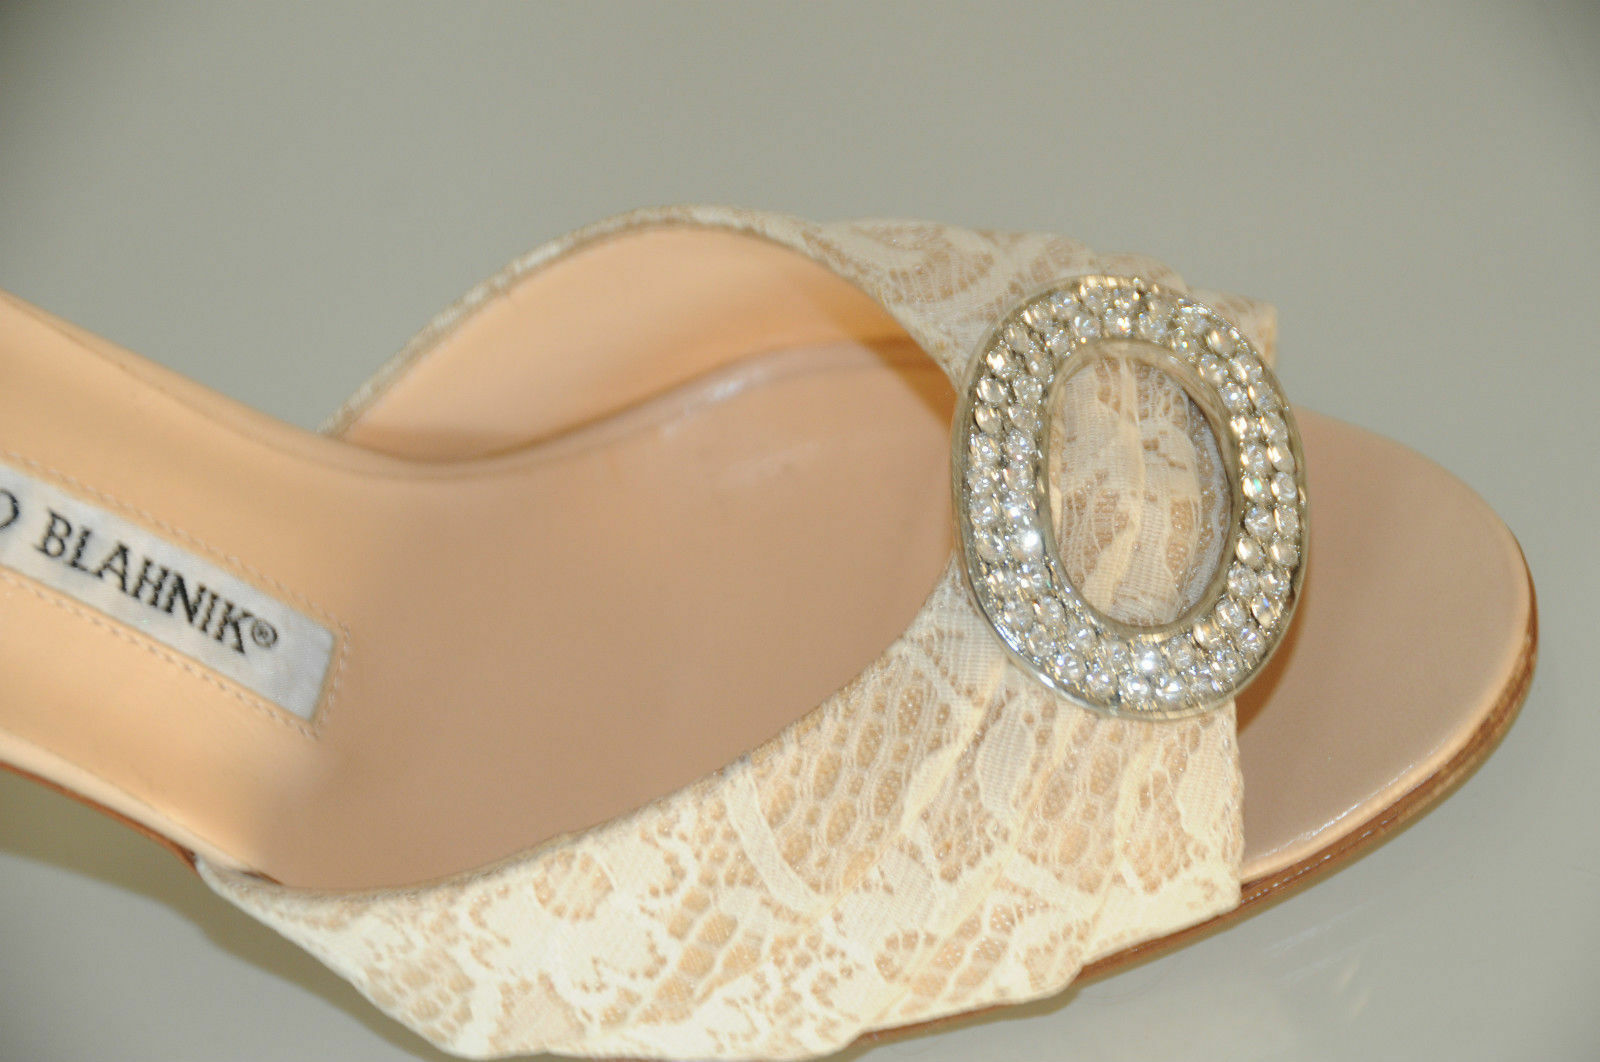 785 New MANOLO BLAHNIK SEDARABY Beige Lace Nude  Silver Jeweled  SHOES wedding